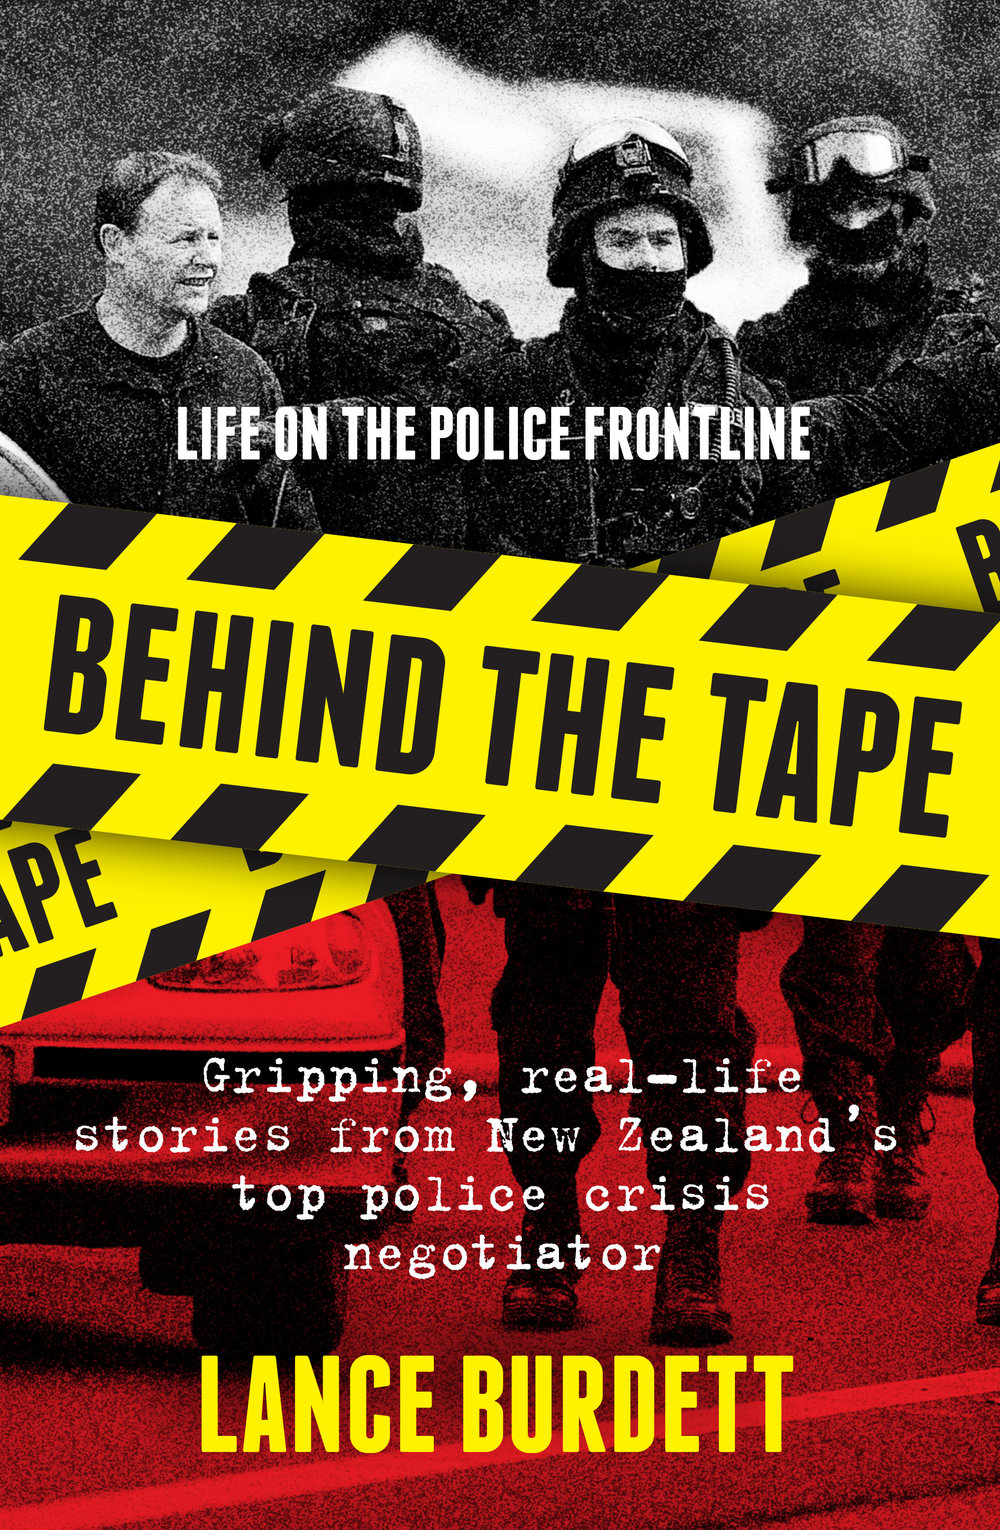 Behind the Tape - Lance Burdett